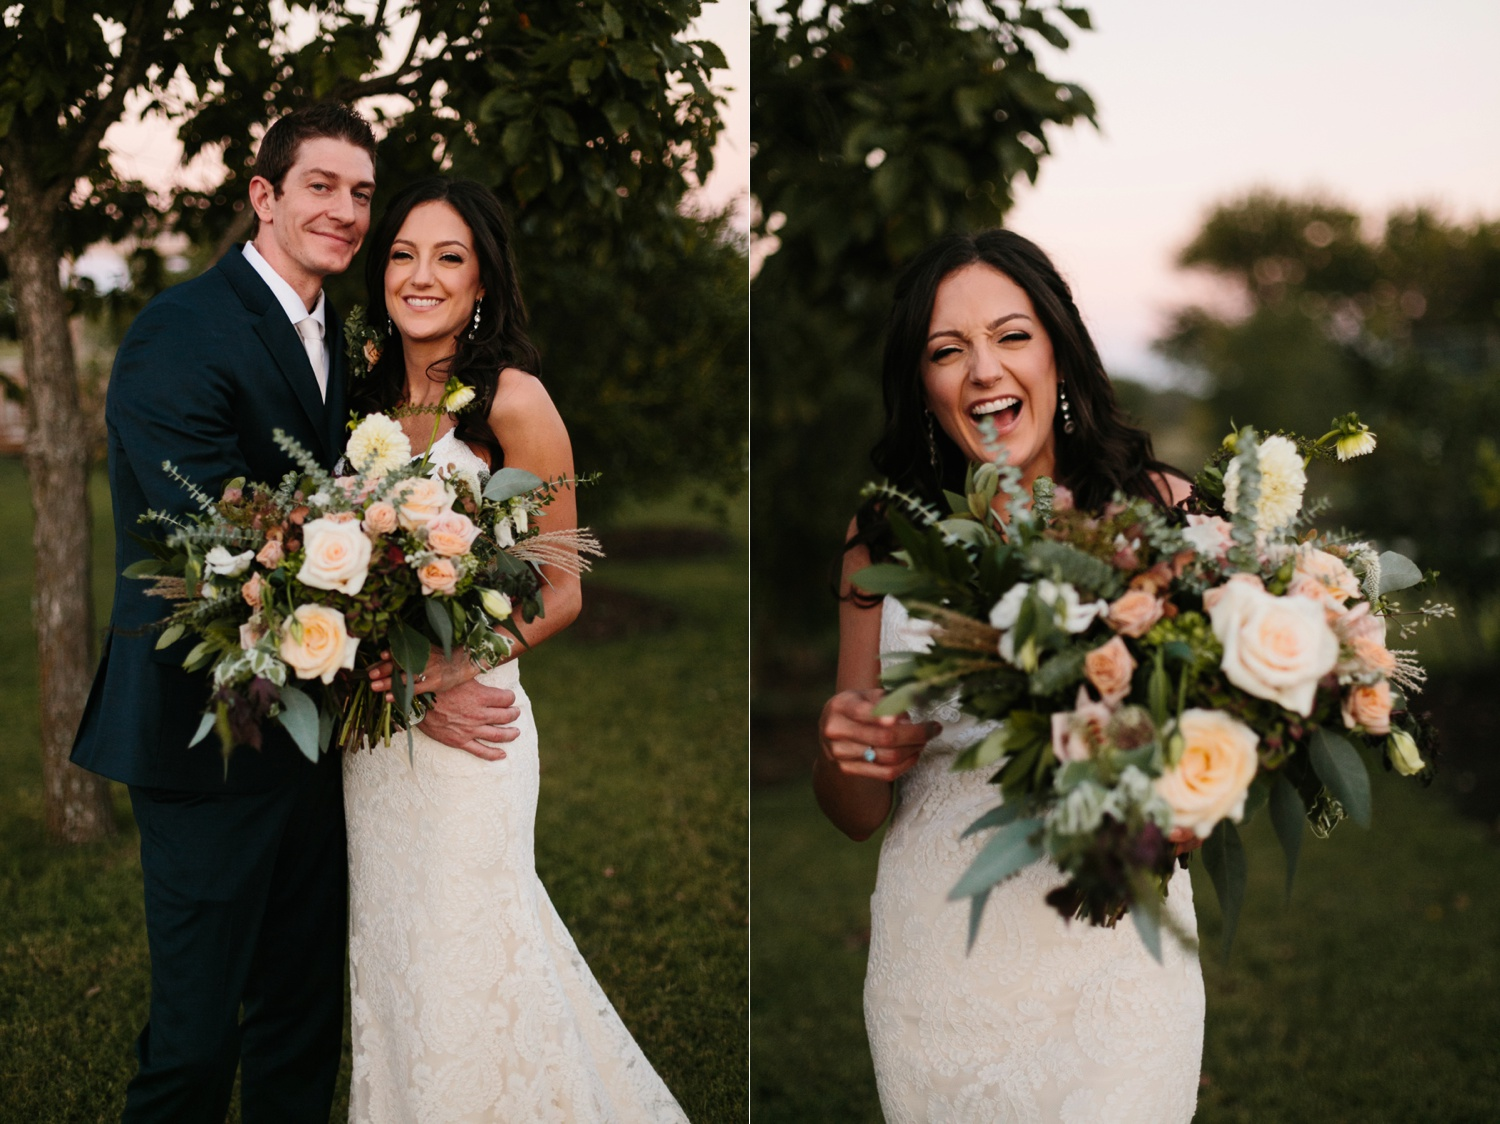 Erica + Henry | a bohemian inspired wedding at Chandlers Gardens in Salina, TX by North Texas Wedding Photographer Rachel Meagan Photography 128